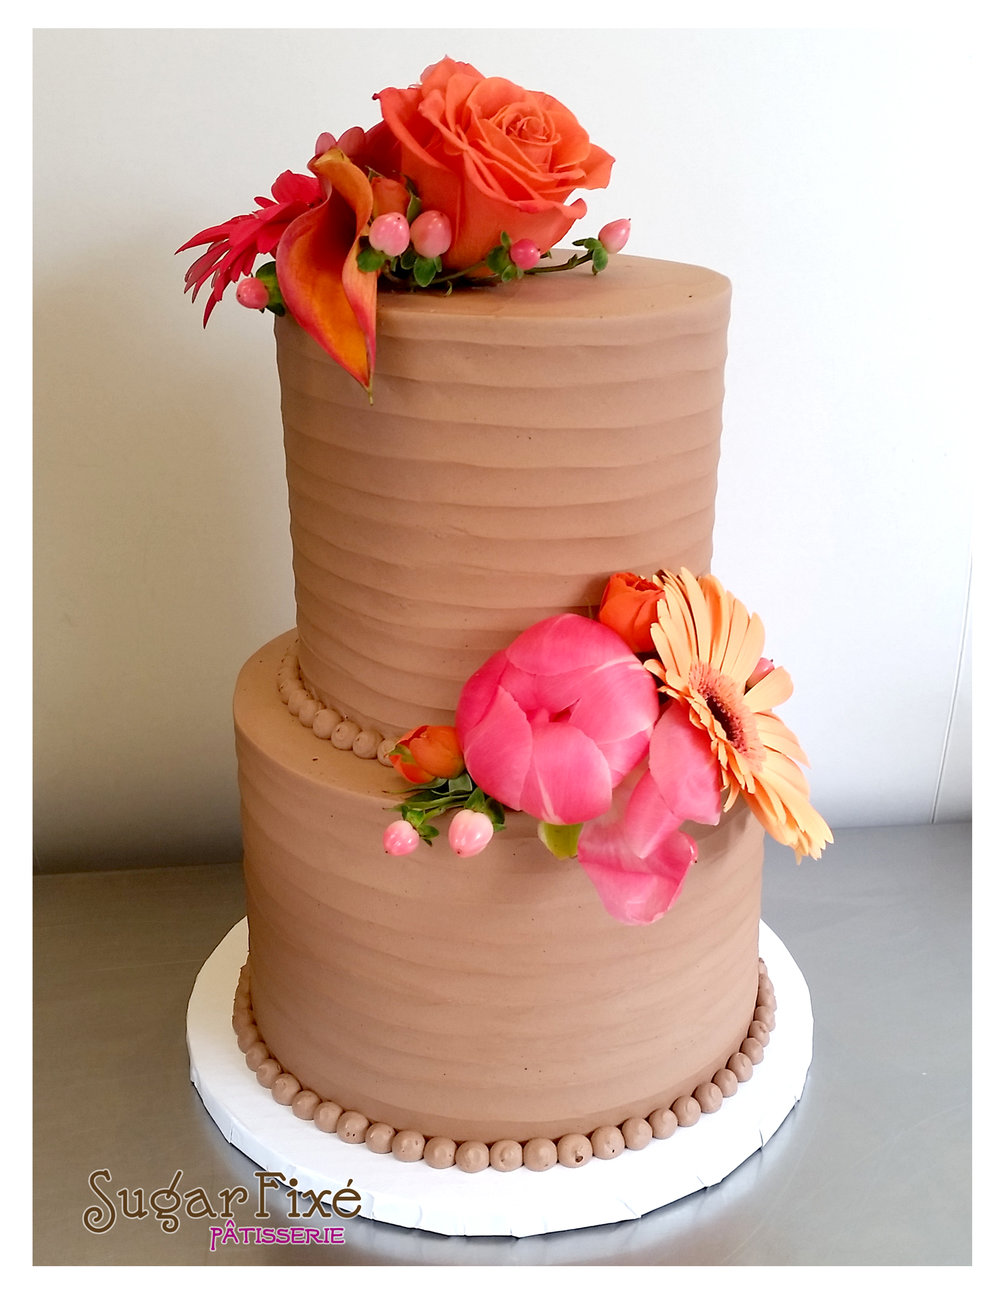 Chocolate Buttercream ripple texture fresh floral cake.jpg